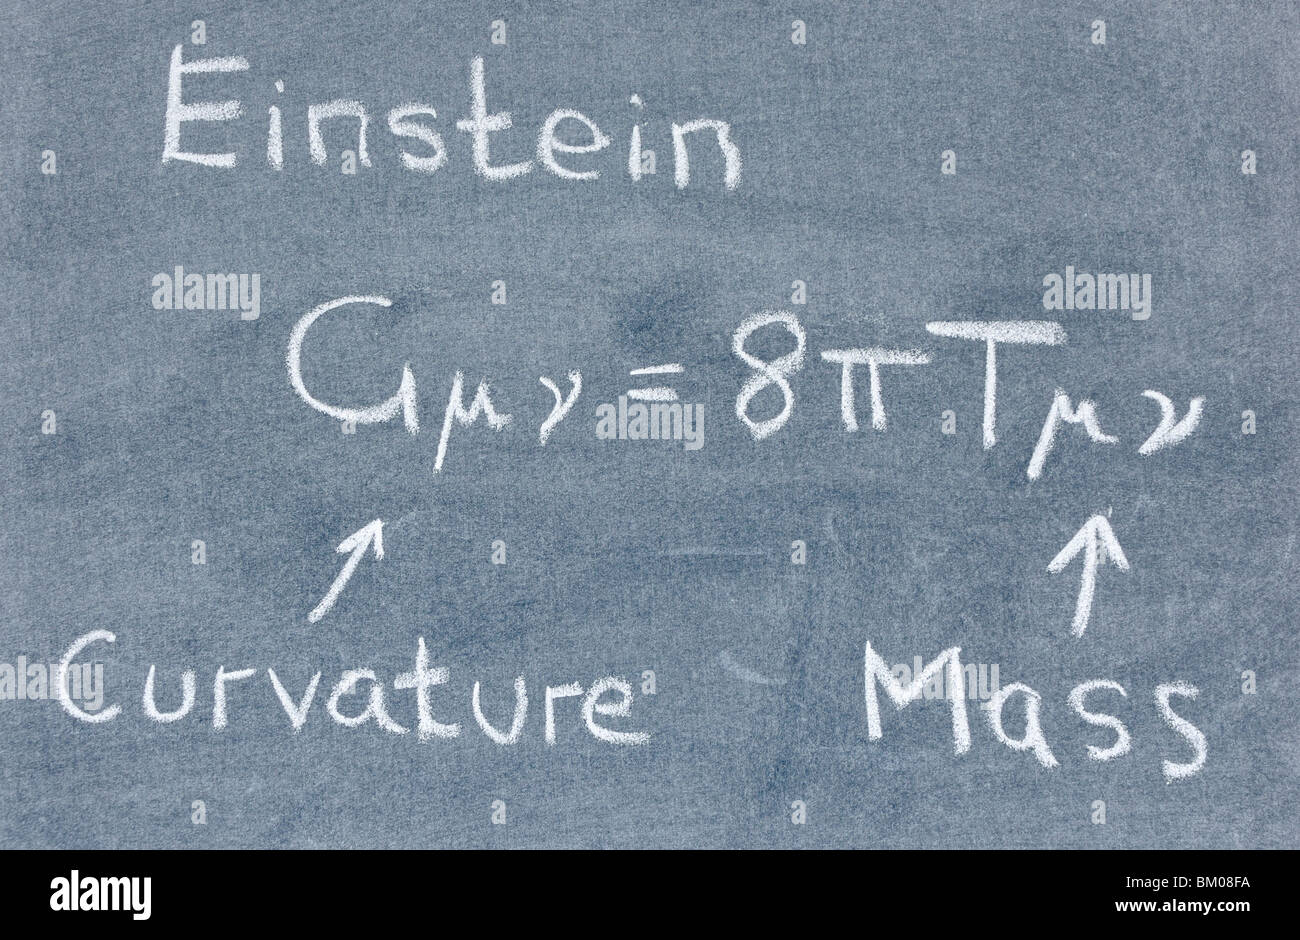 Einstein's field equation written on a blackboard - Stock Image